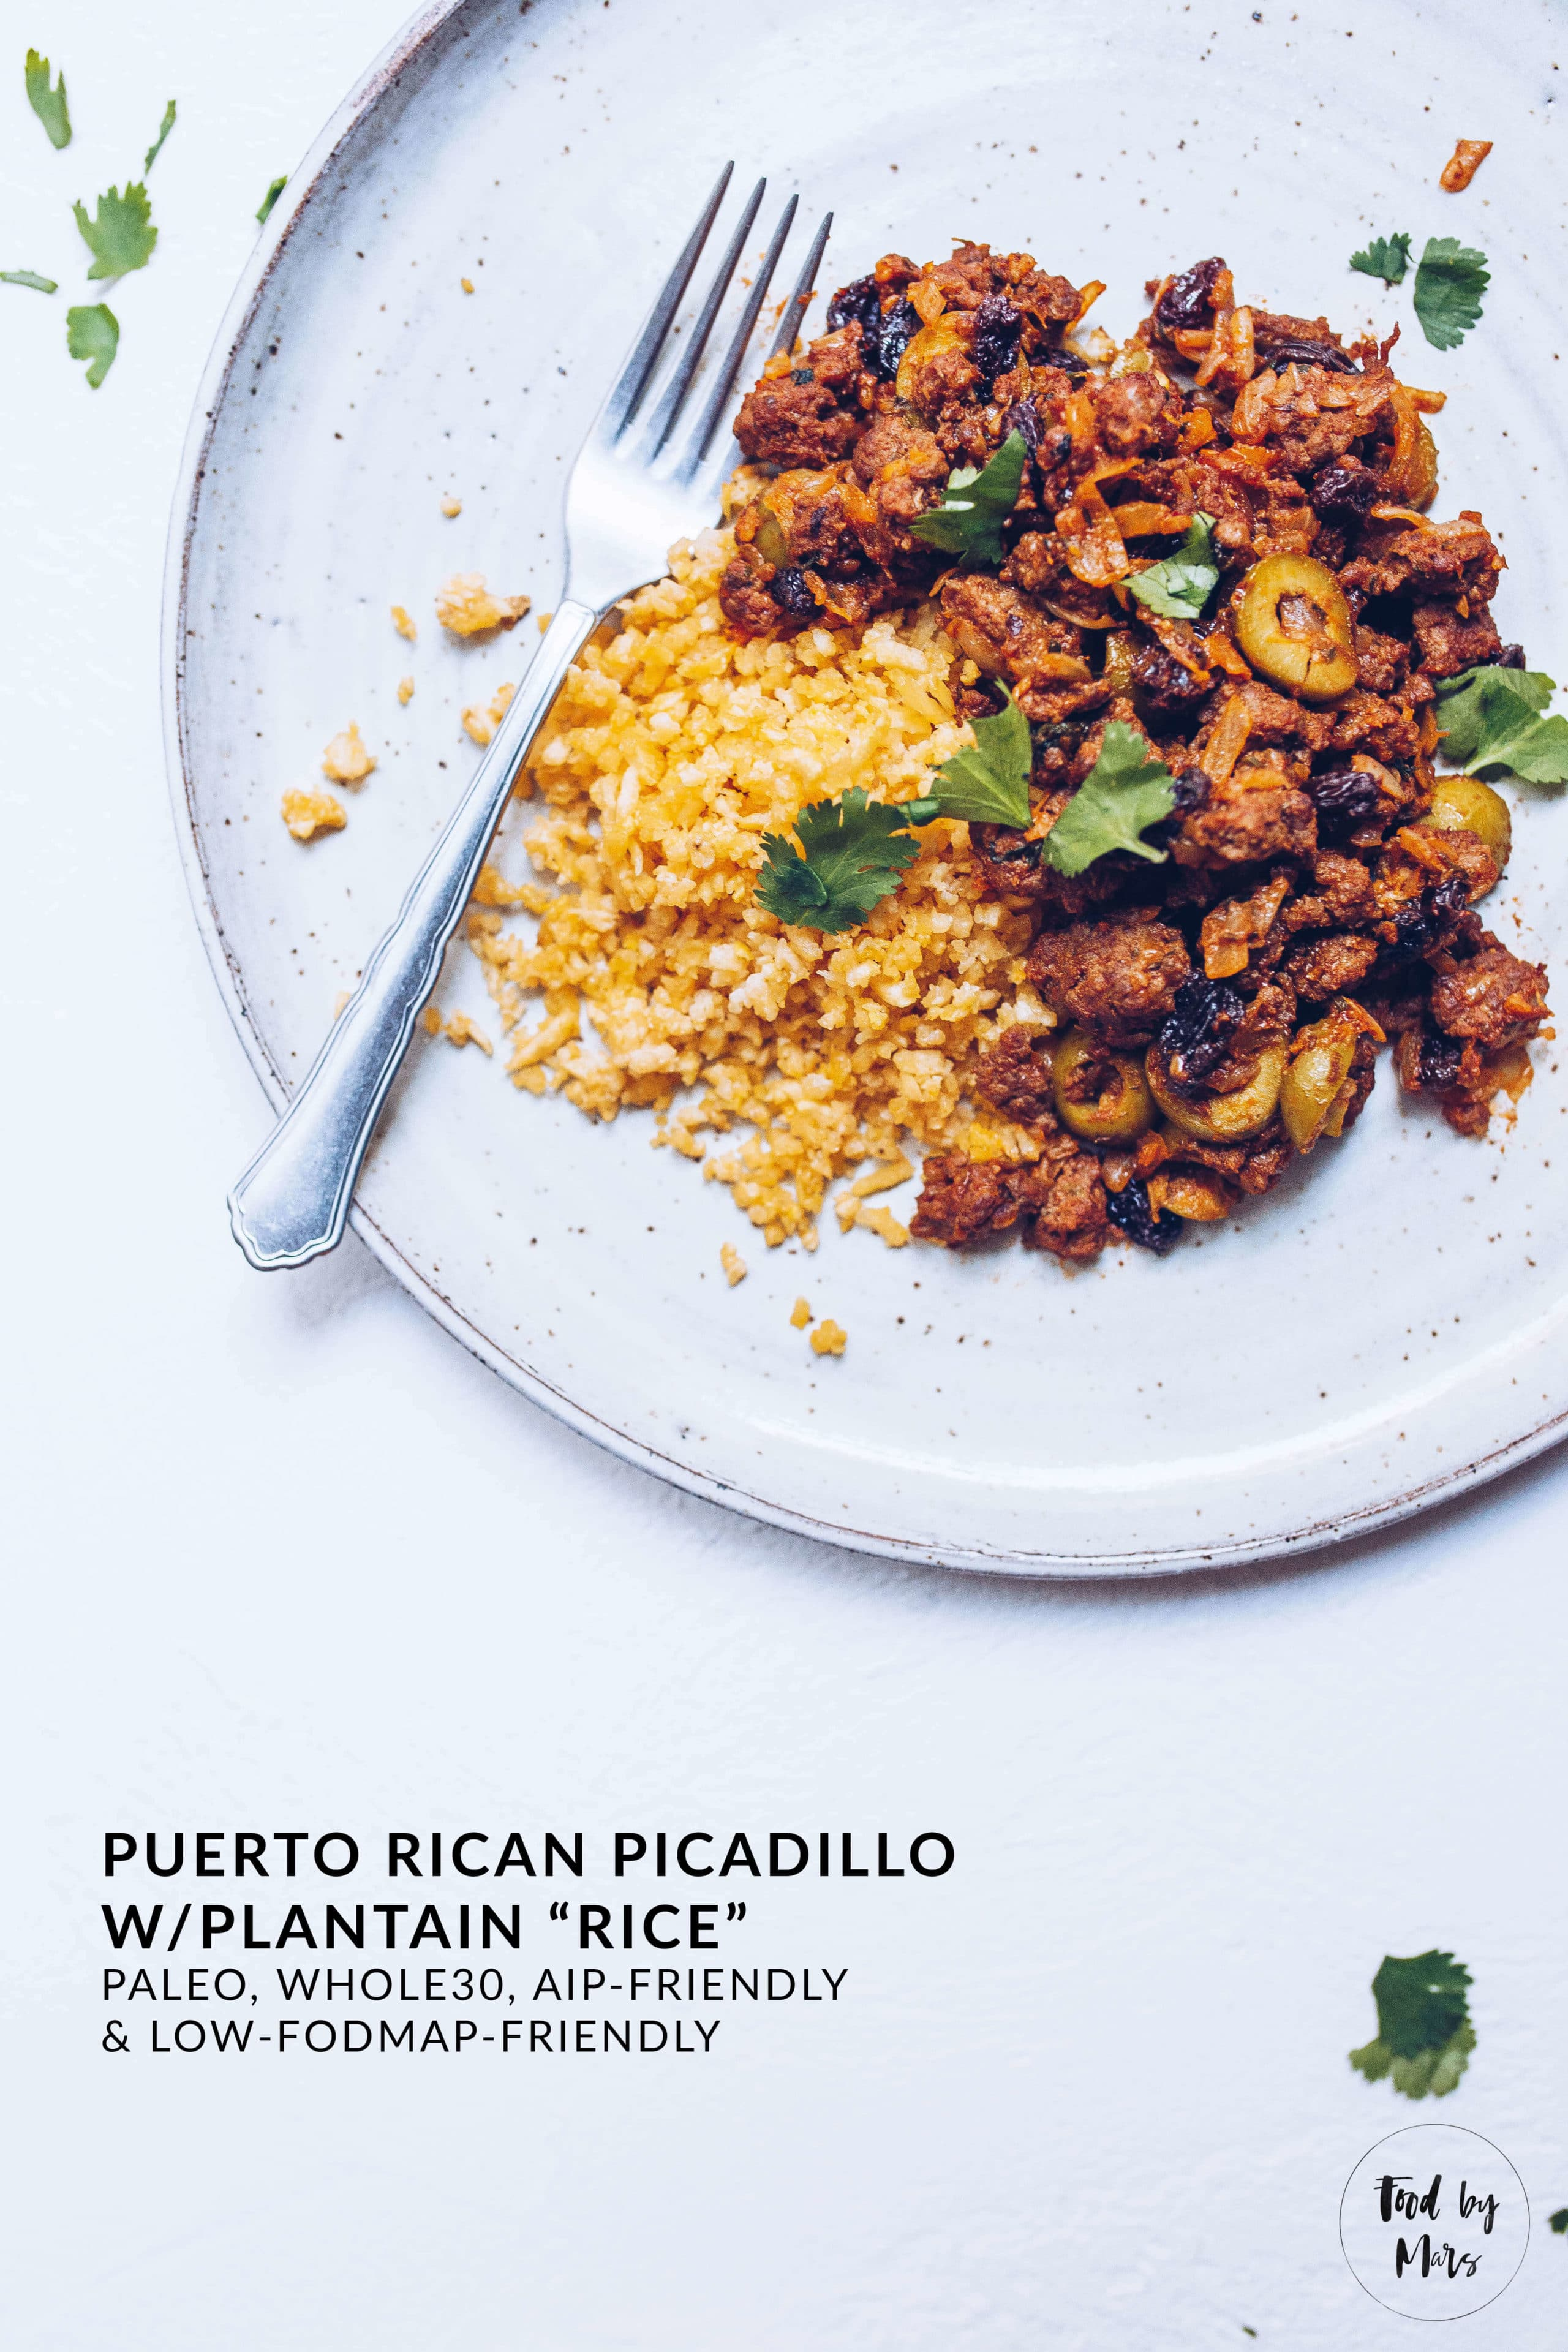 Puerto Rican Picadillo with Plantain Rice (Paleo, AIP-friendly, Whole30, Low FODMAP-friendly) via Food by Mars